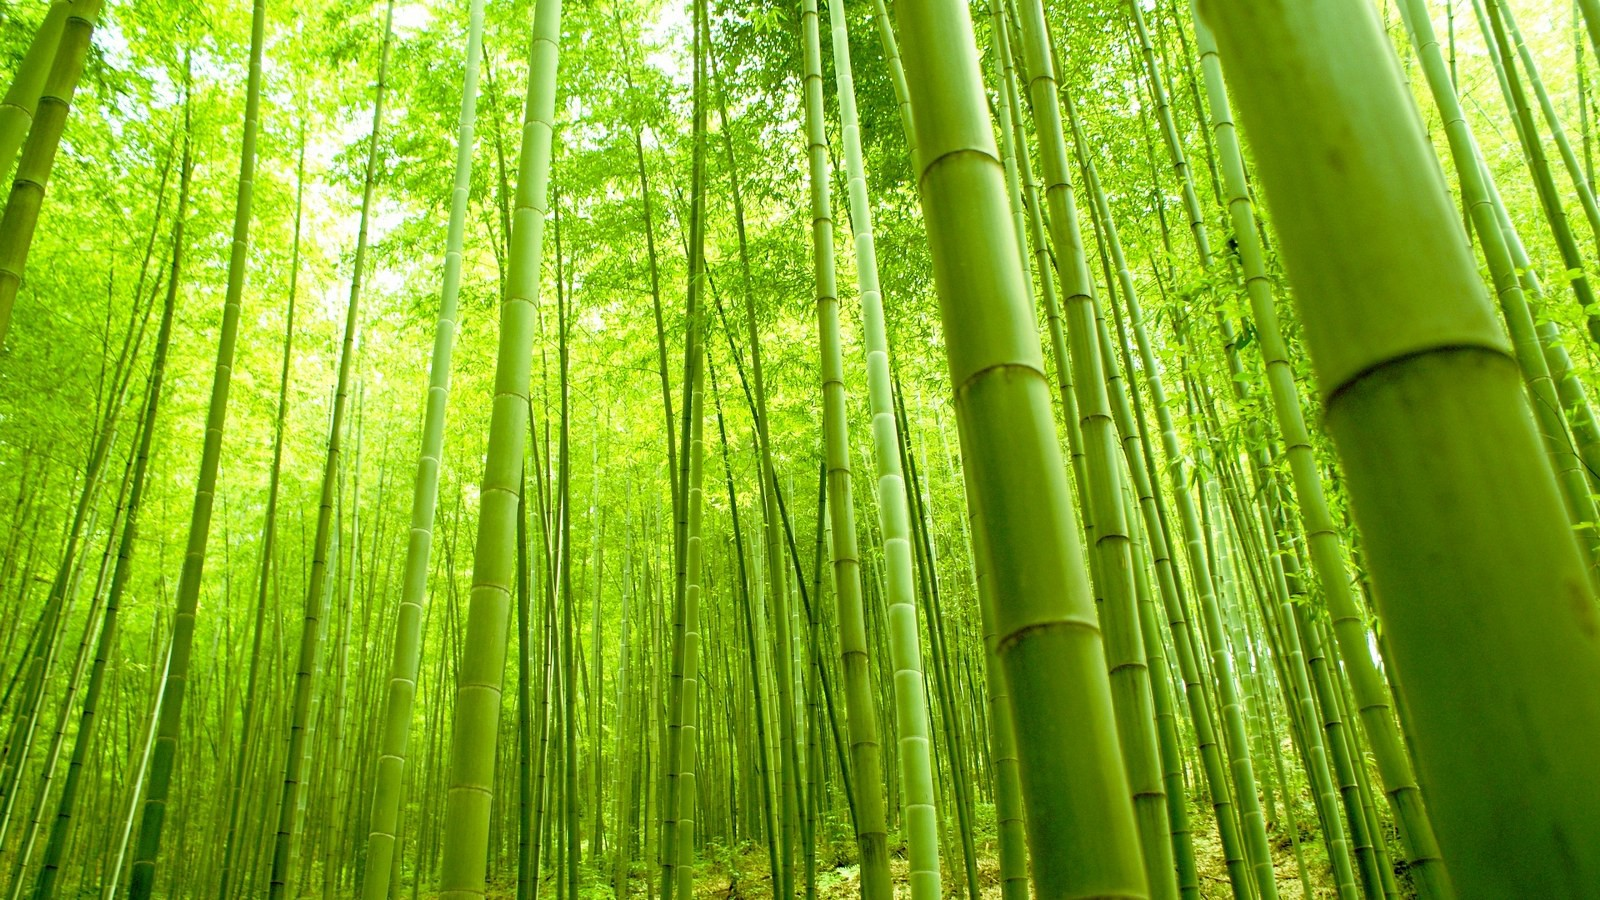 Bamboo is an amazing plant and material!